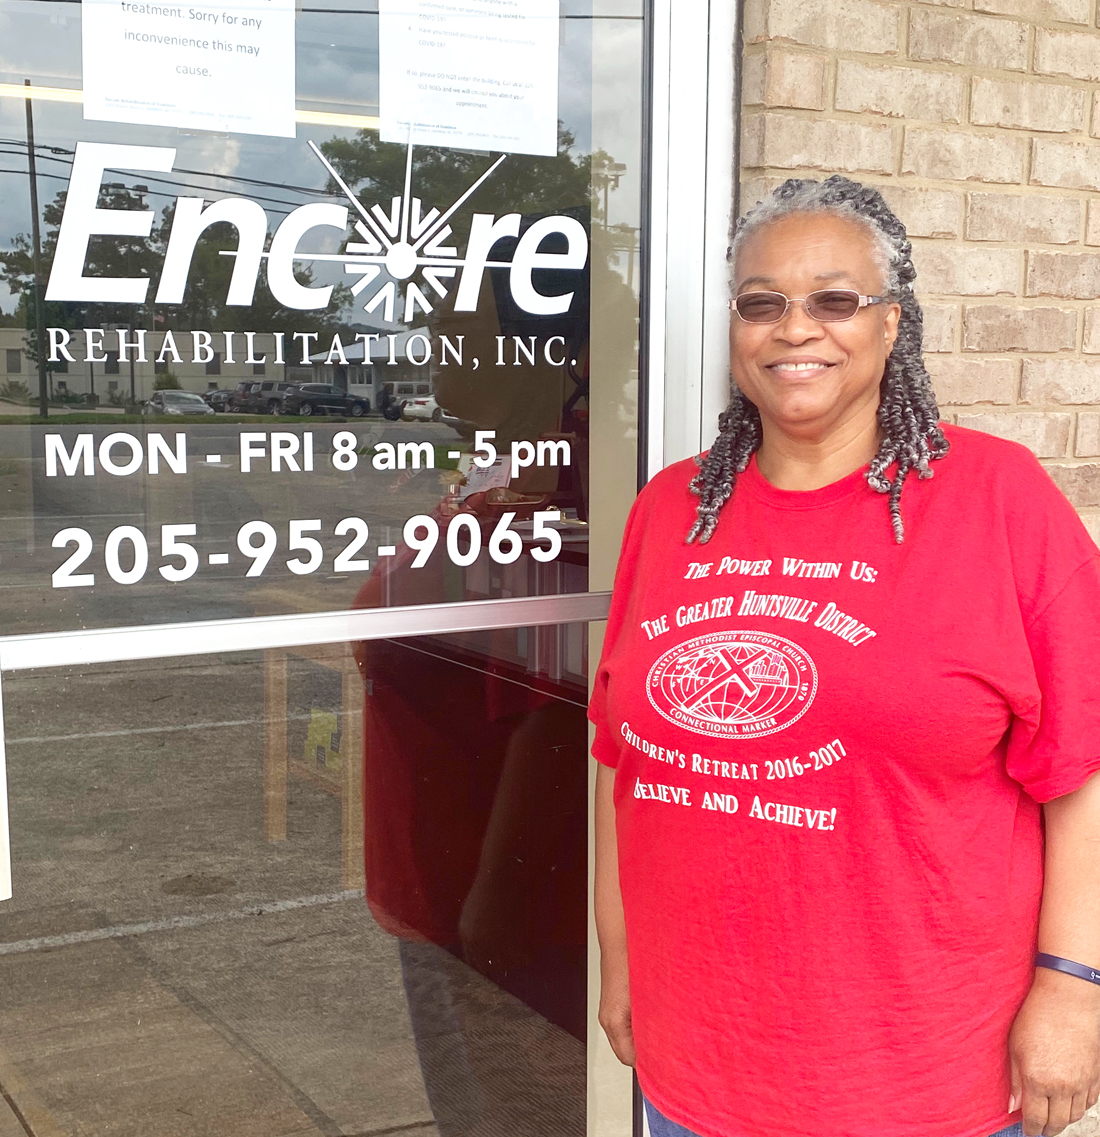 Linda Stowe is Patient of the Month for #EncoreRehab Hamilton